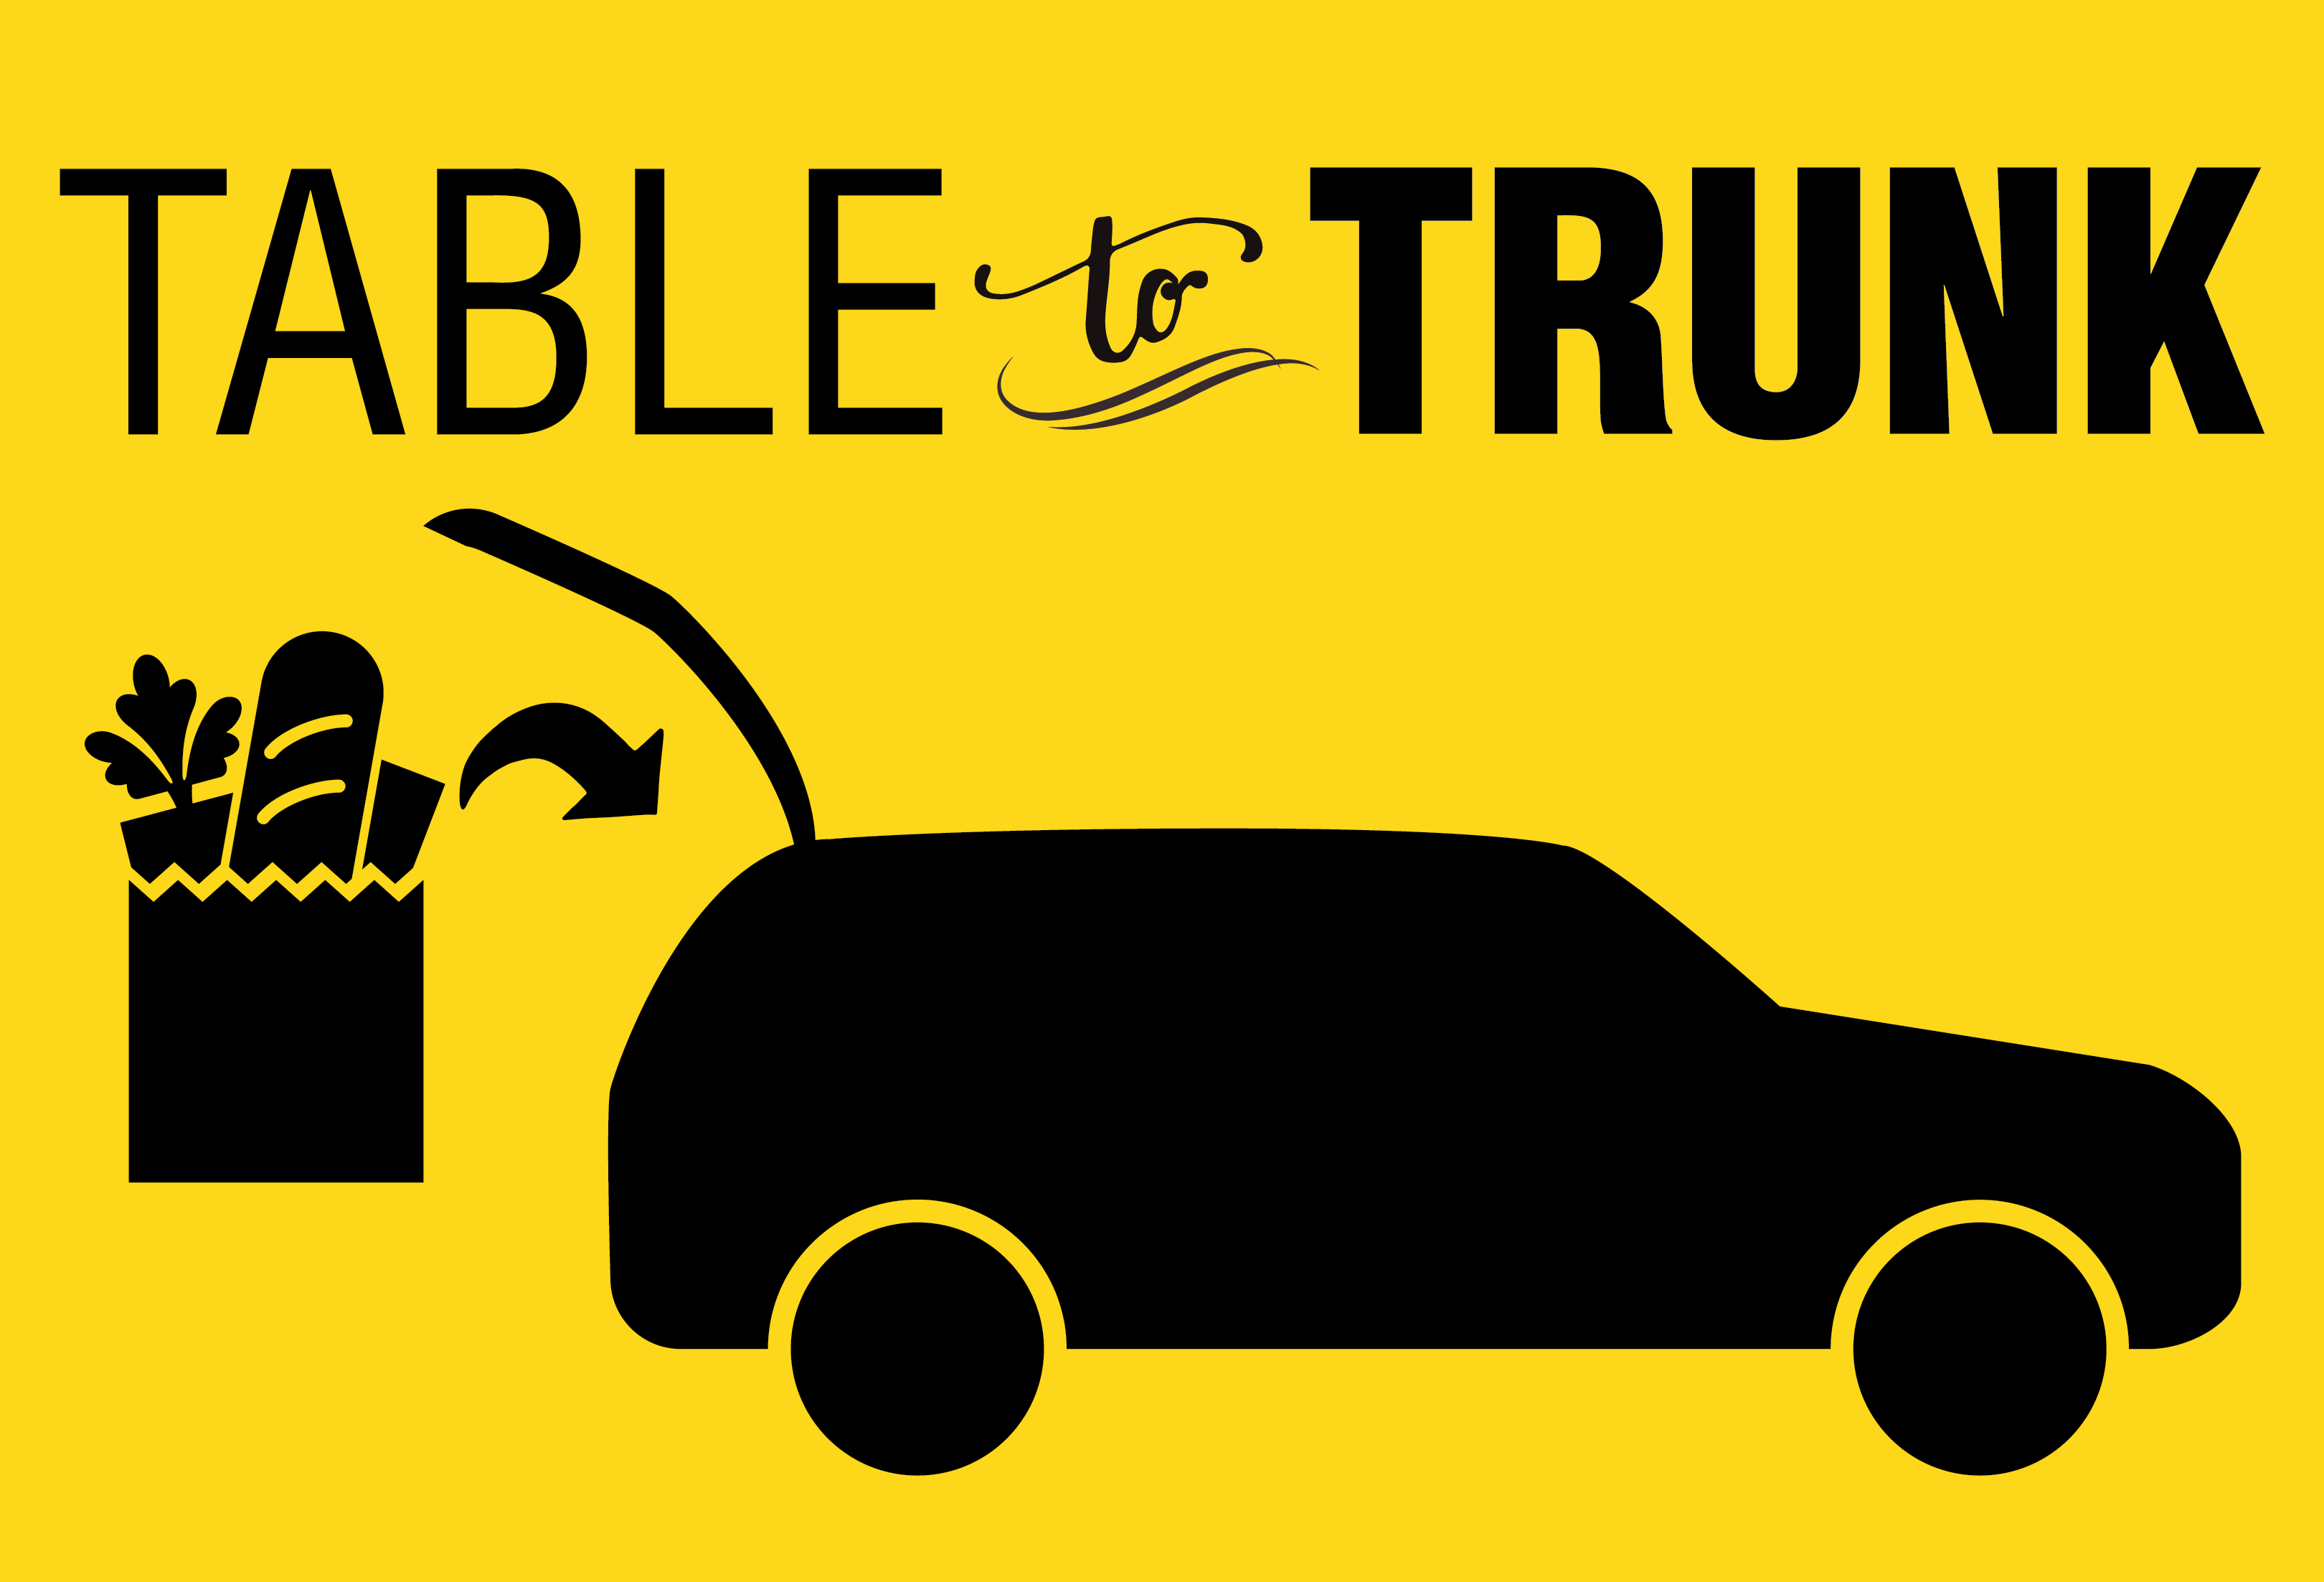 Table To Trunk logo